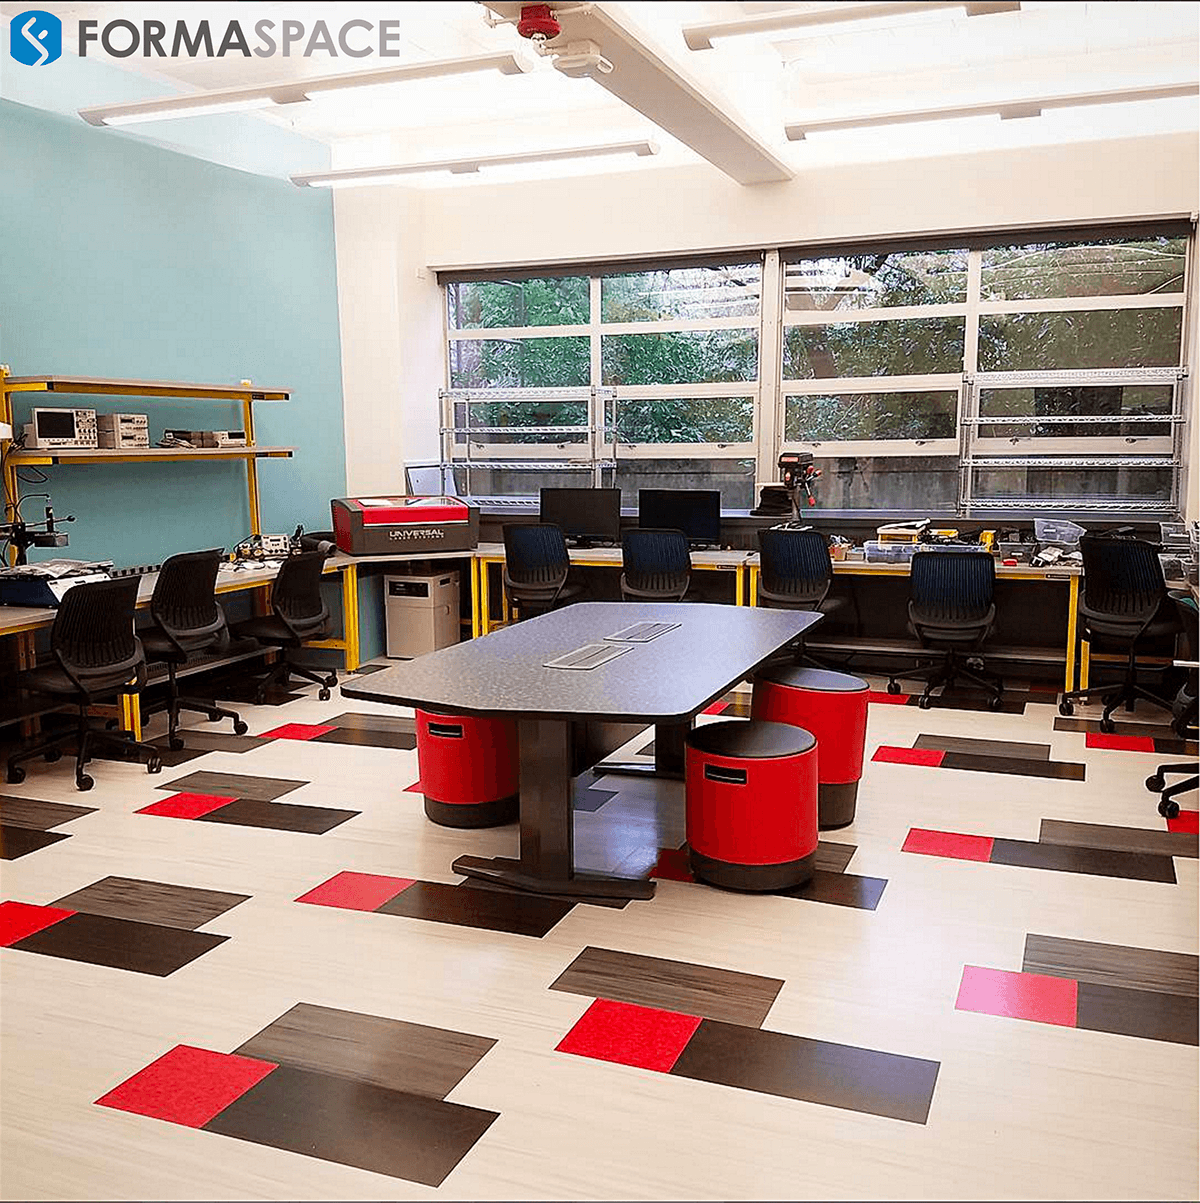 Makerspace Furniture for University Innovation Lab